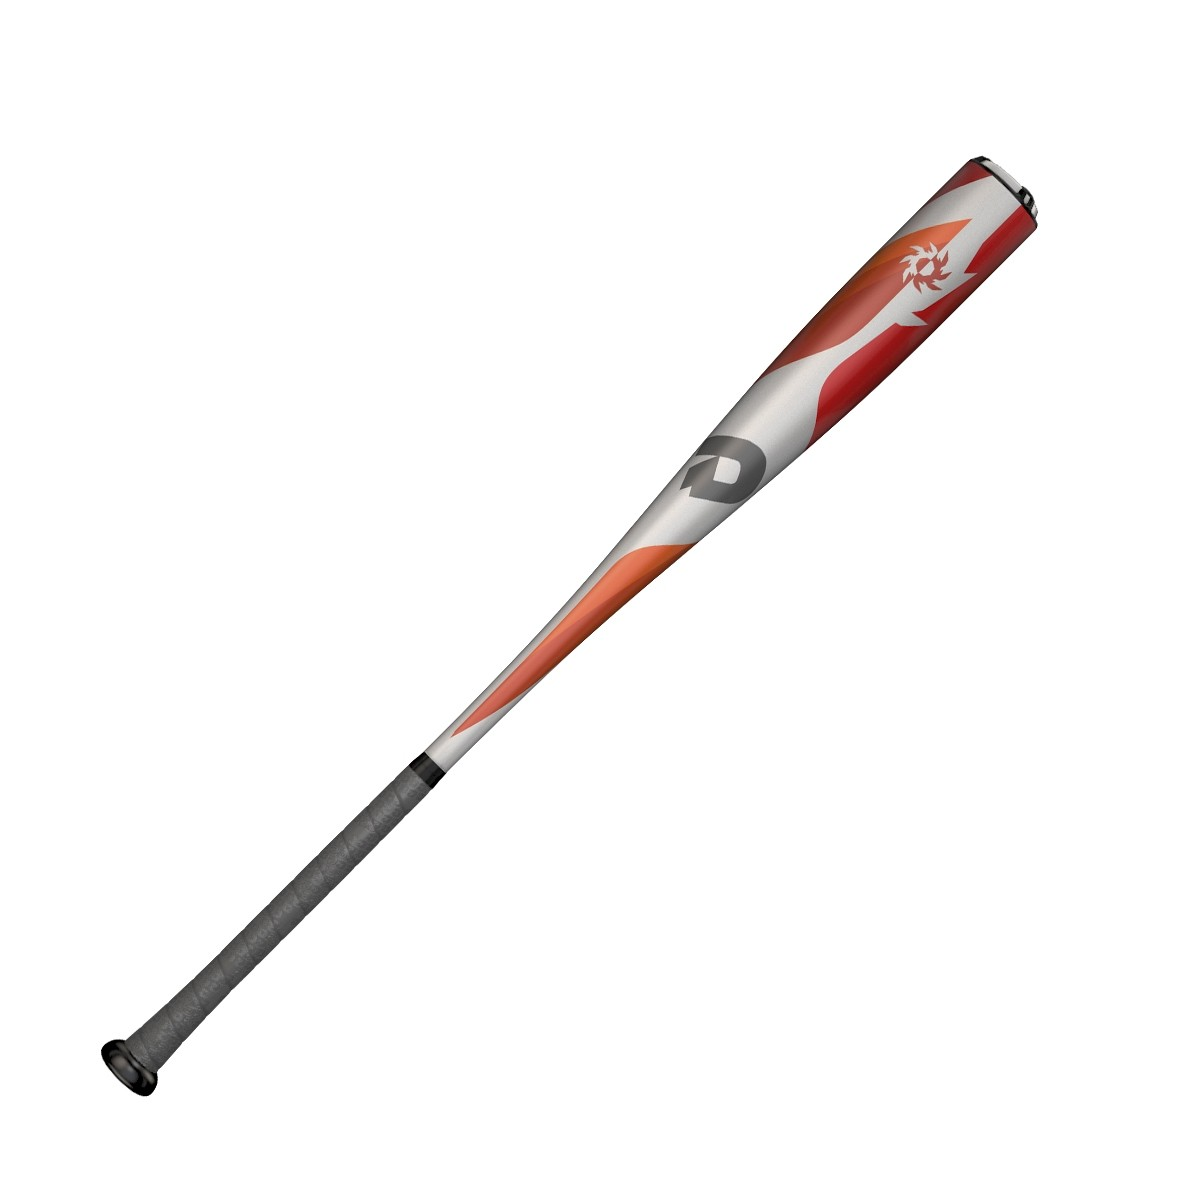 2018 DeMarini Voodoo One Balanced USA Baseball Bat (-10)